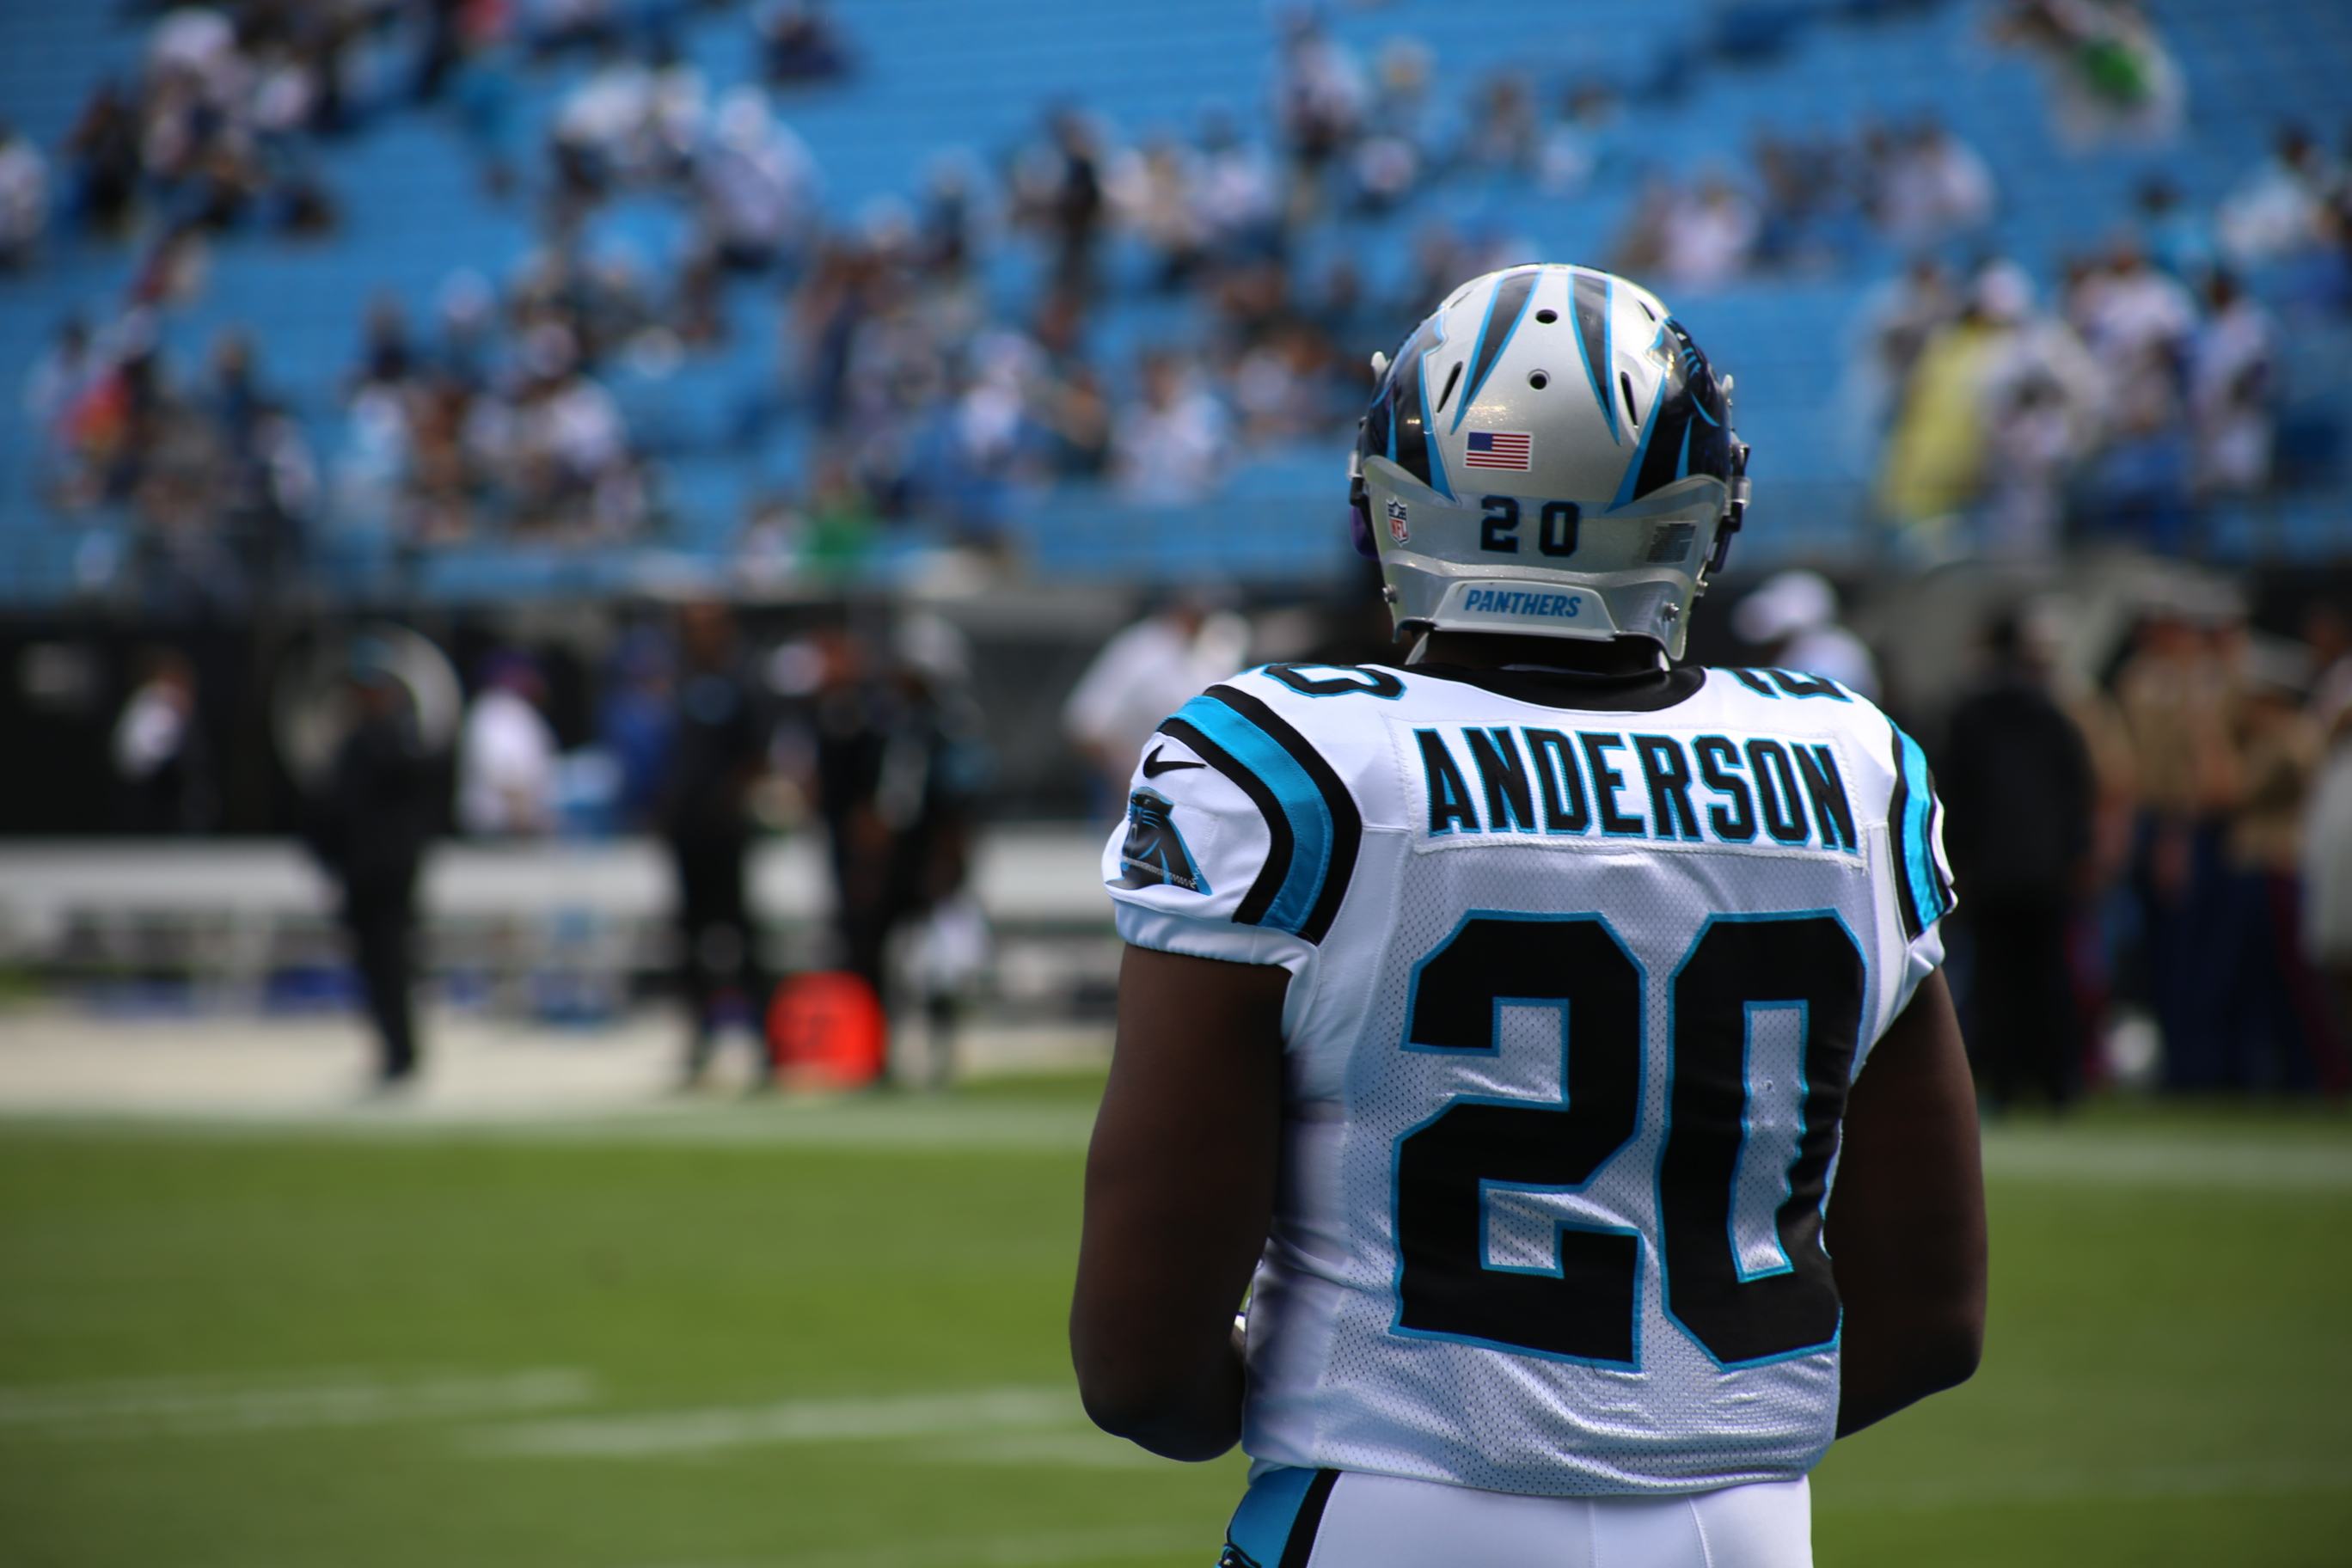 fd840e2144dc Panthers release C.J. Anderson